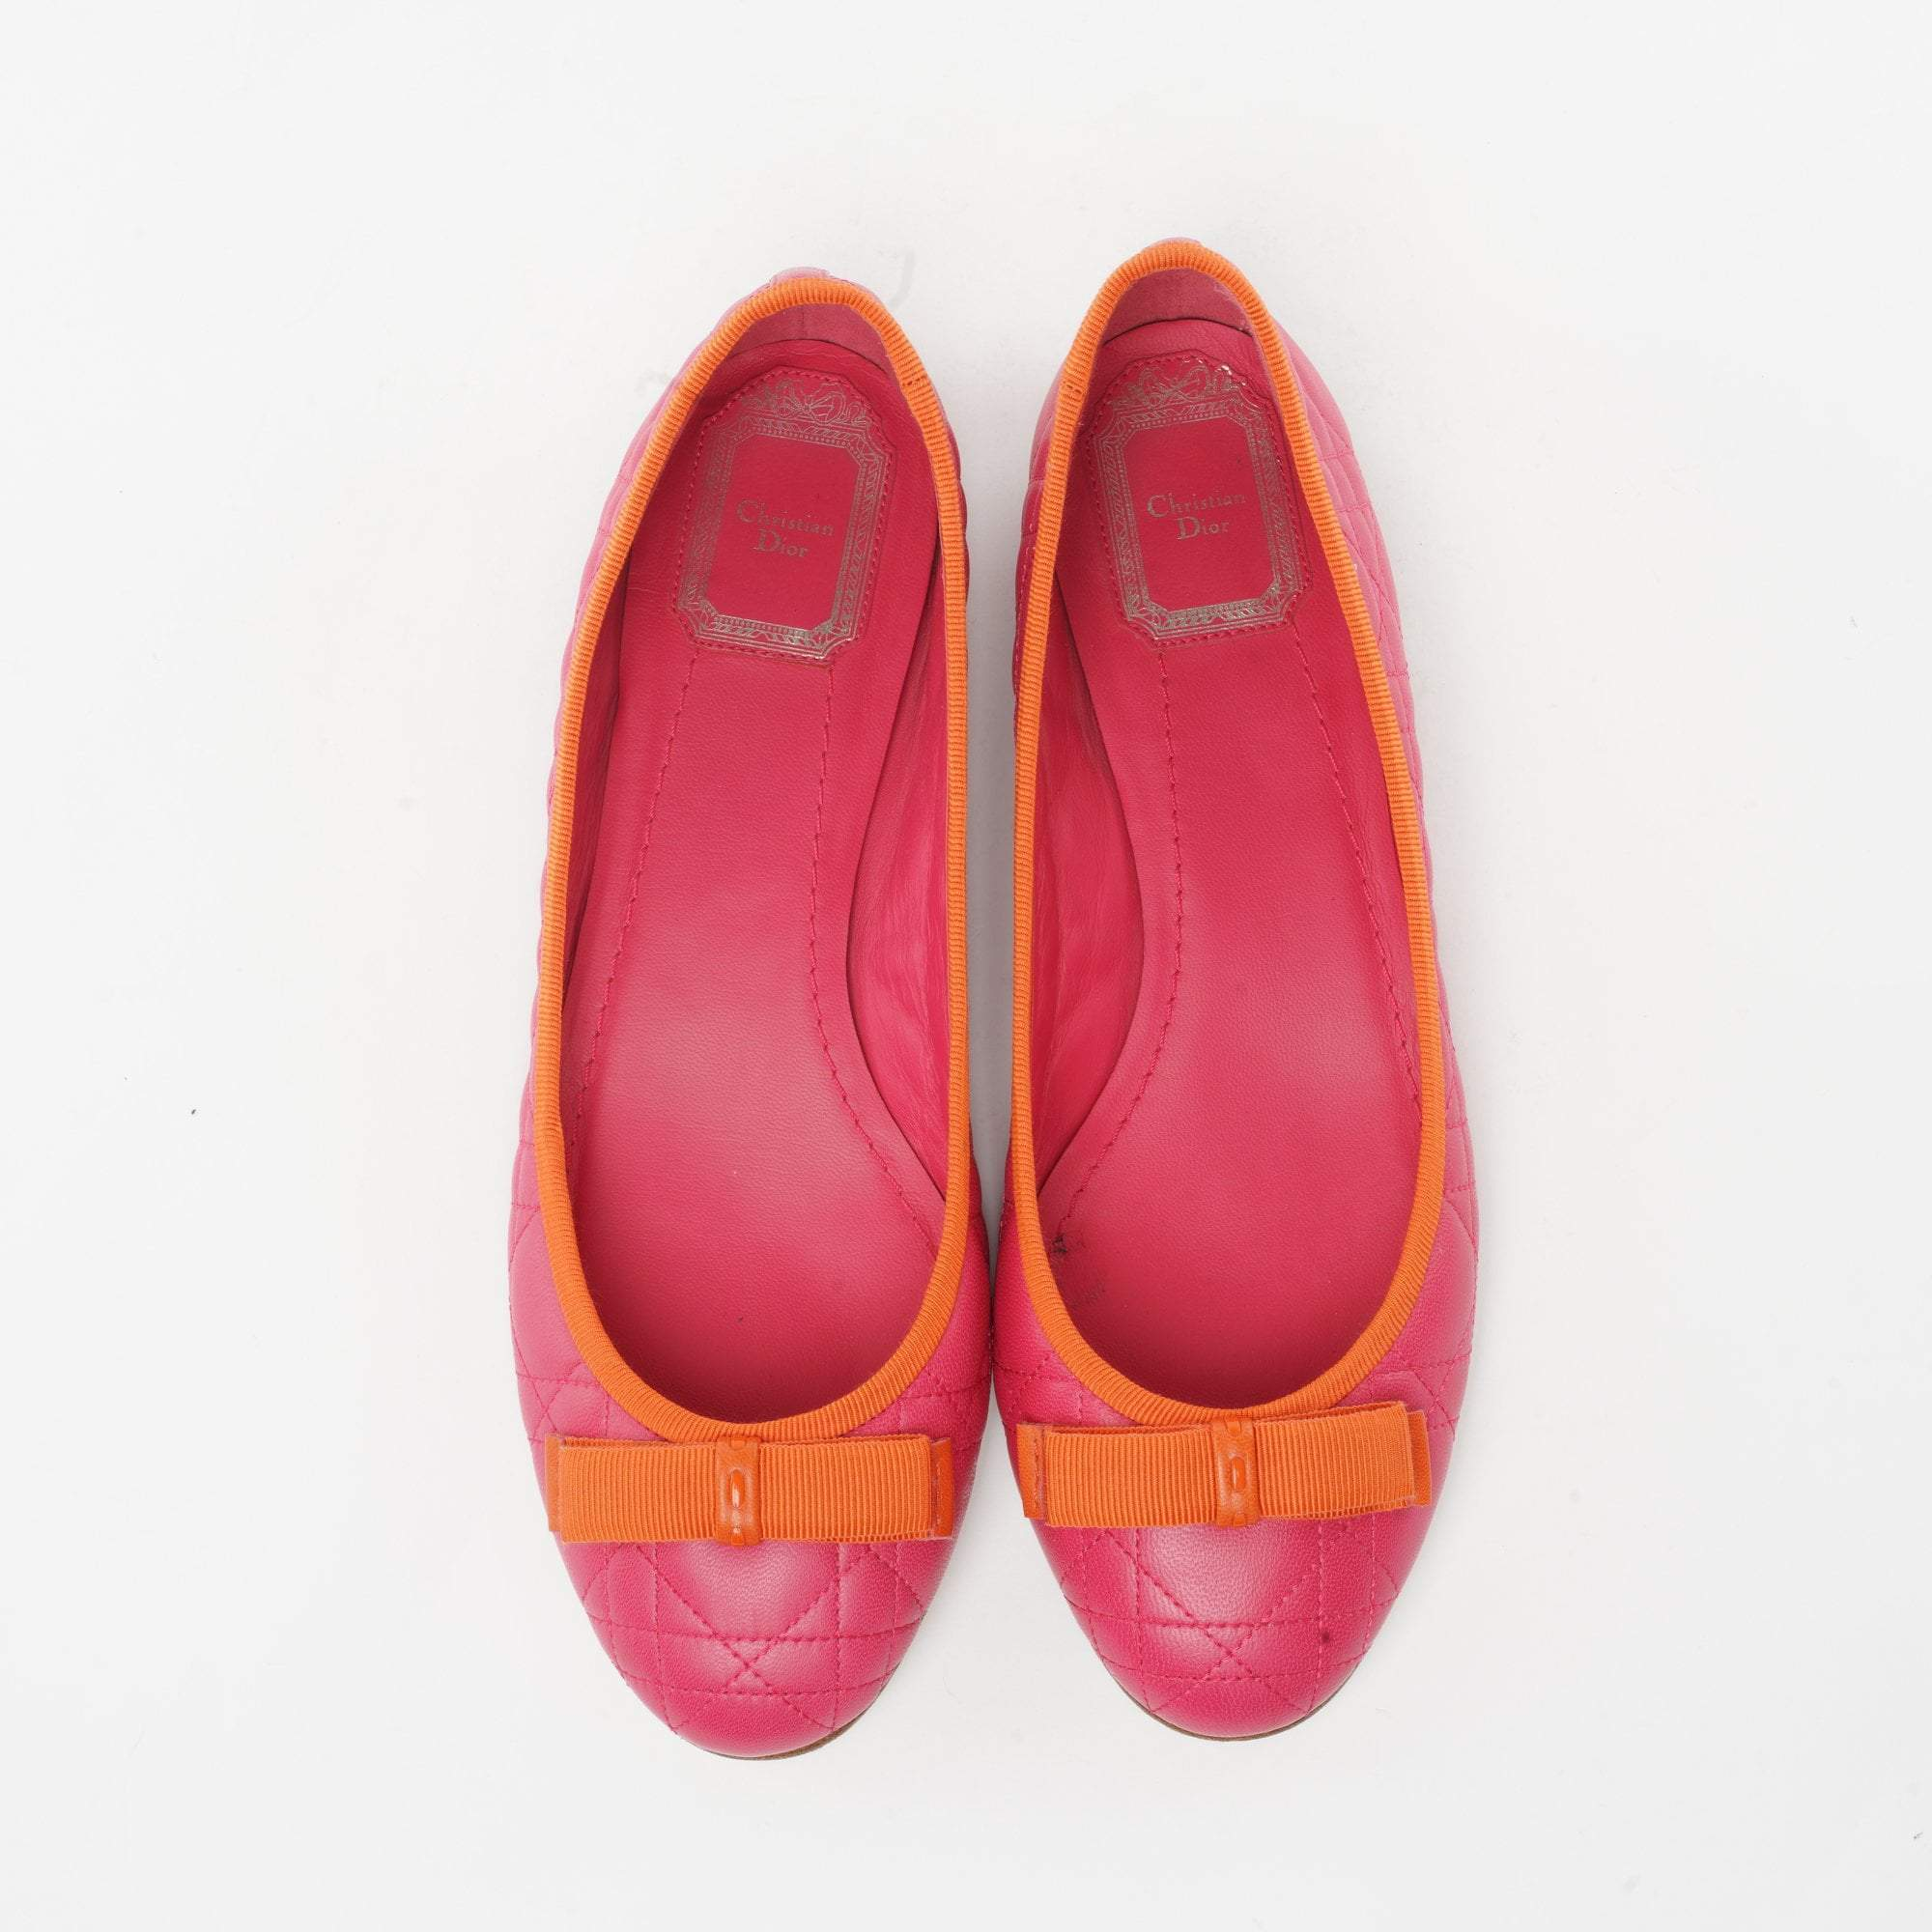 Christian Dior Carnation Pink and Orange Leather Carnage Ballerina Flats